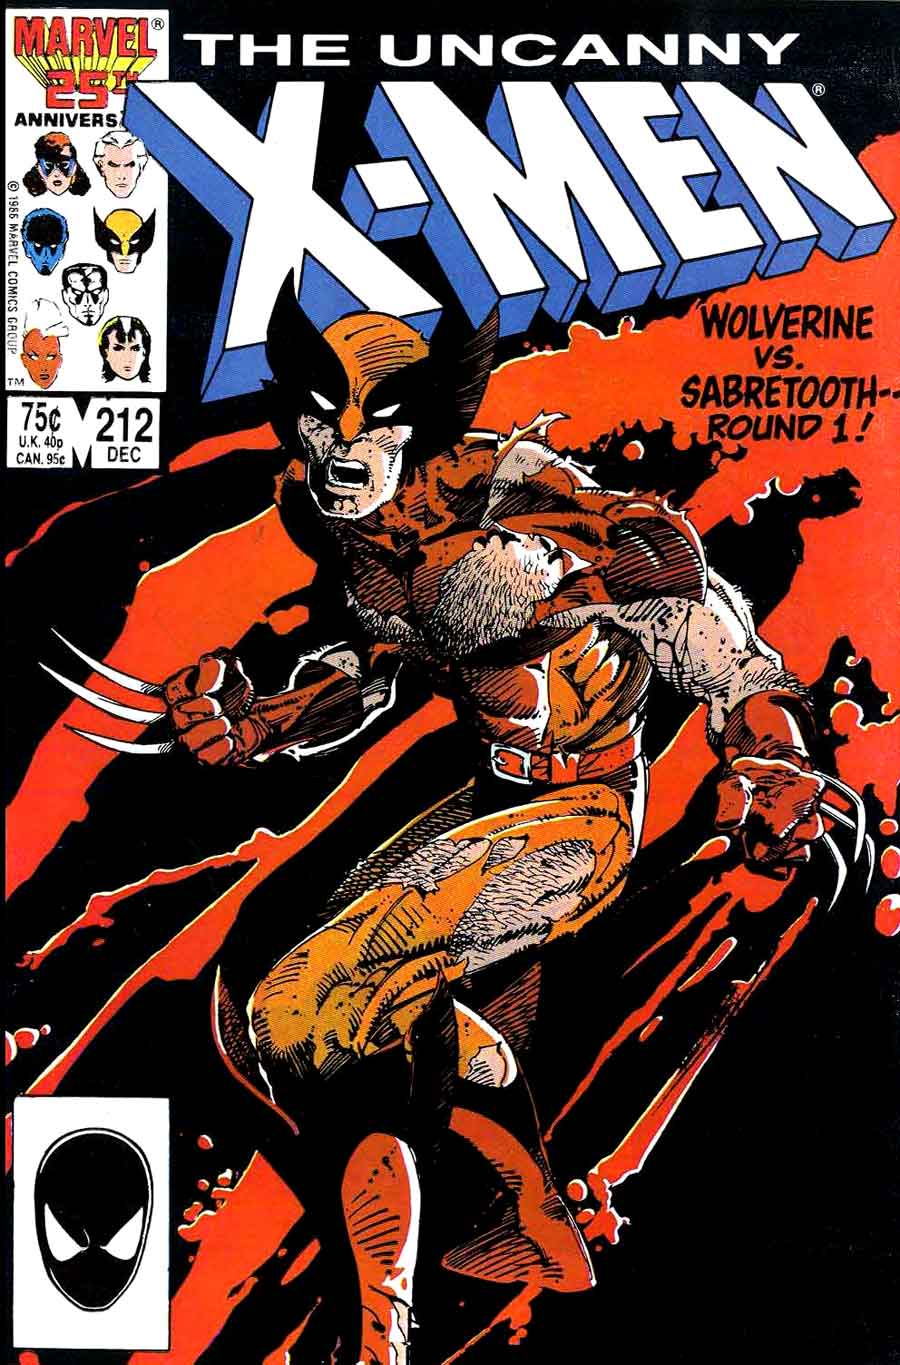 X-men v1 #212 marvel comic book cover art by Barry Windsor Smith